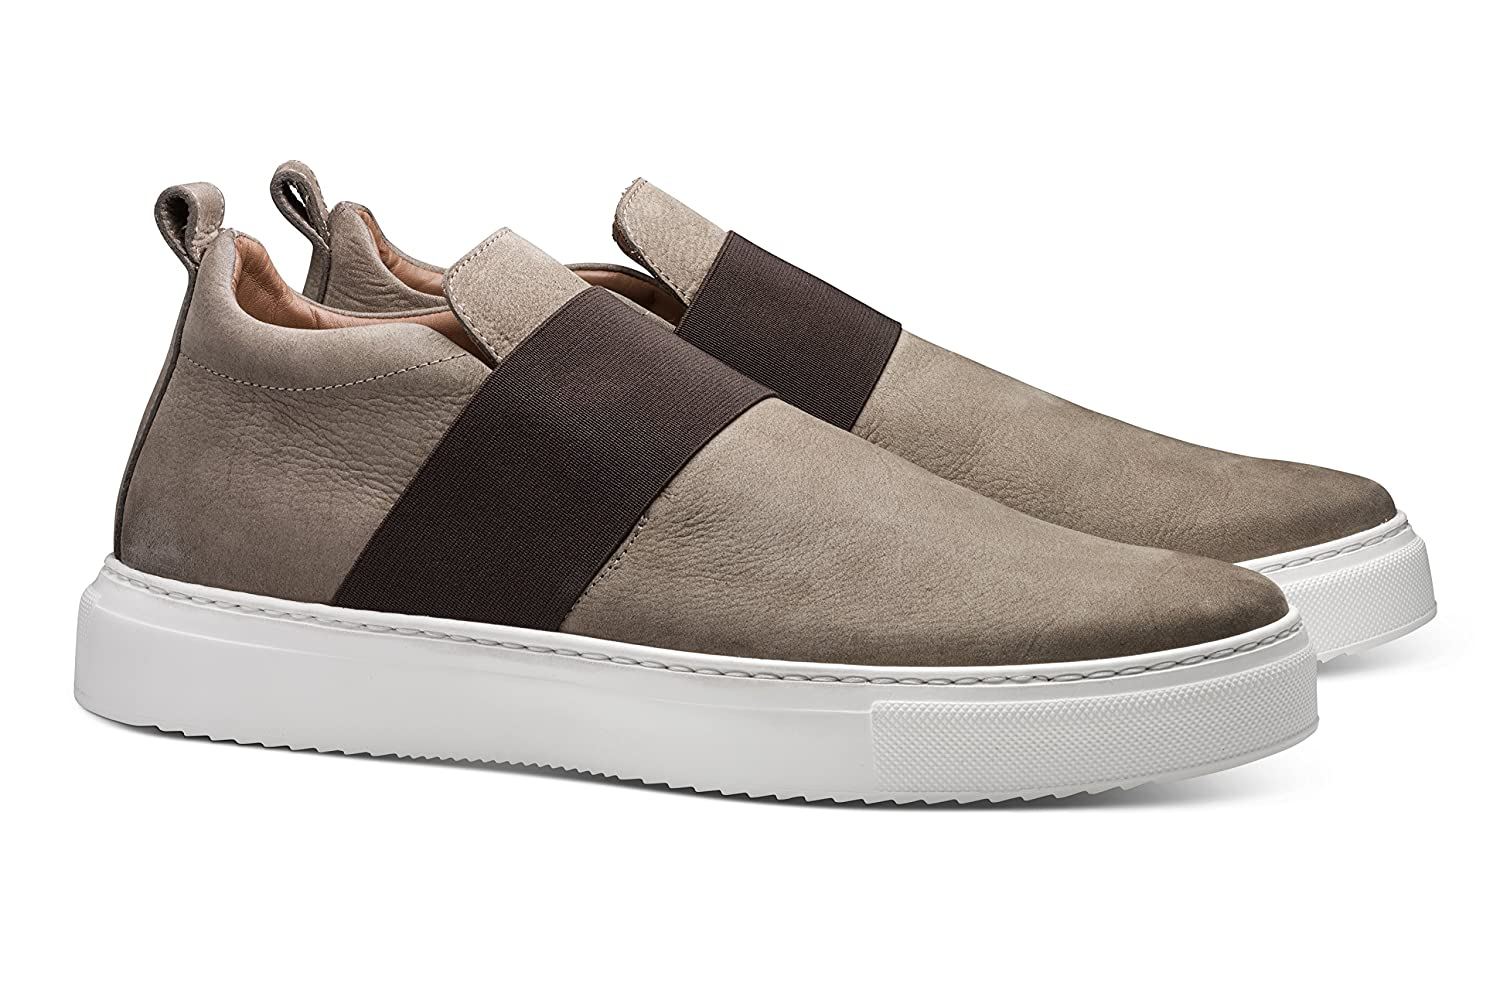 Grey MORAL CODE The Edan  Premium Hand Crafted Men's Leather Pull-On Mid-Top Sneaker